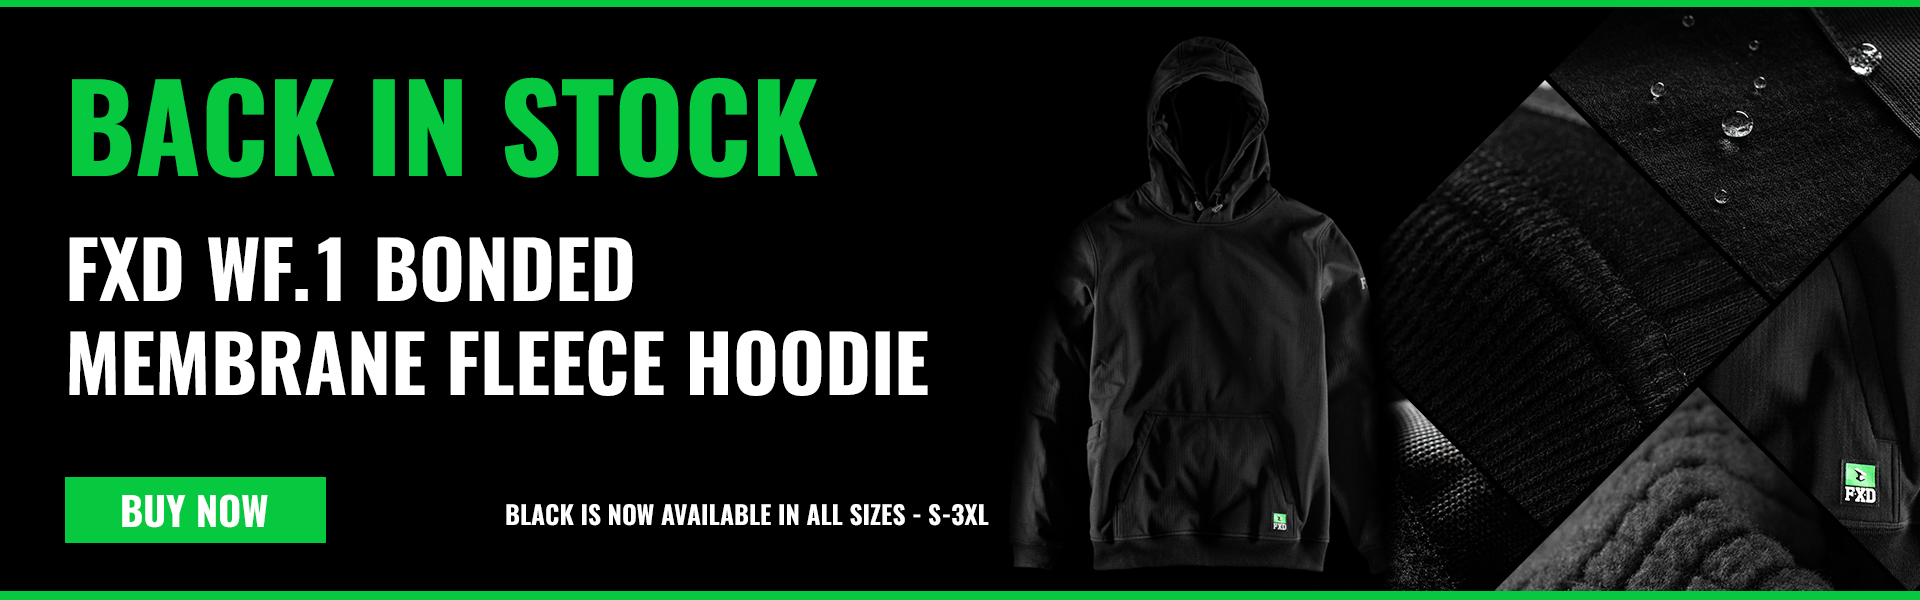 FXD Hoodie Back In Stock